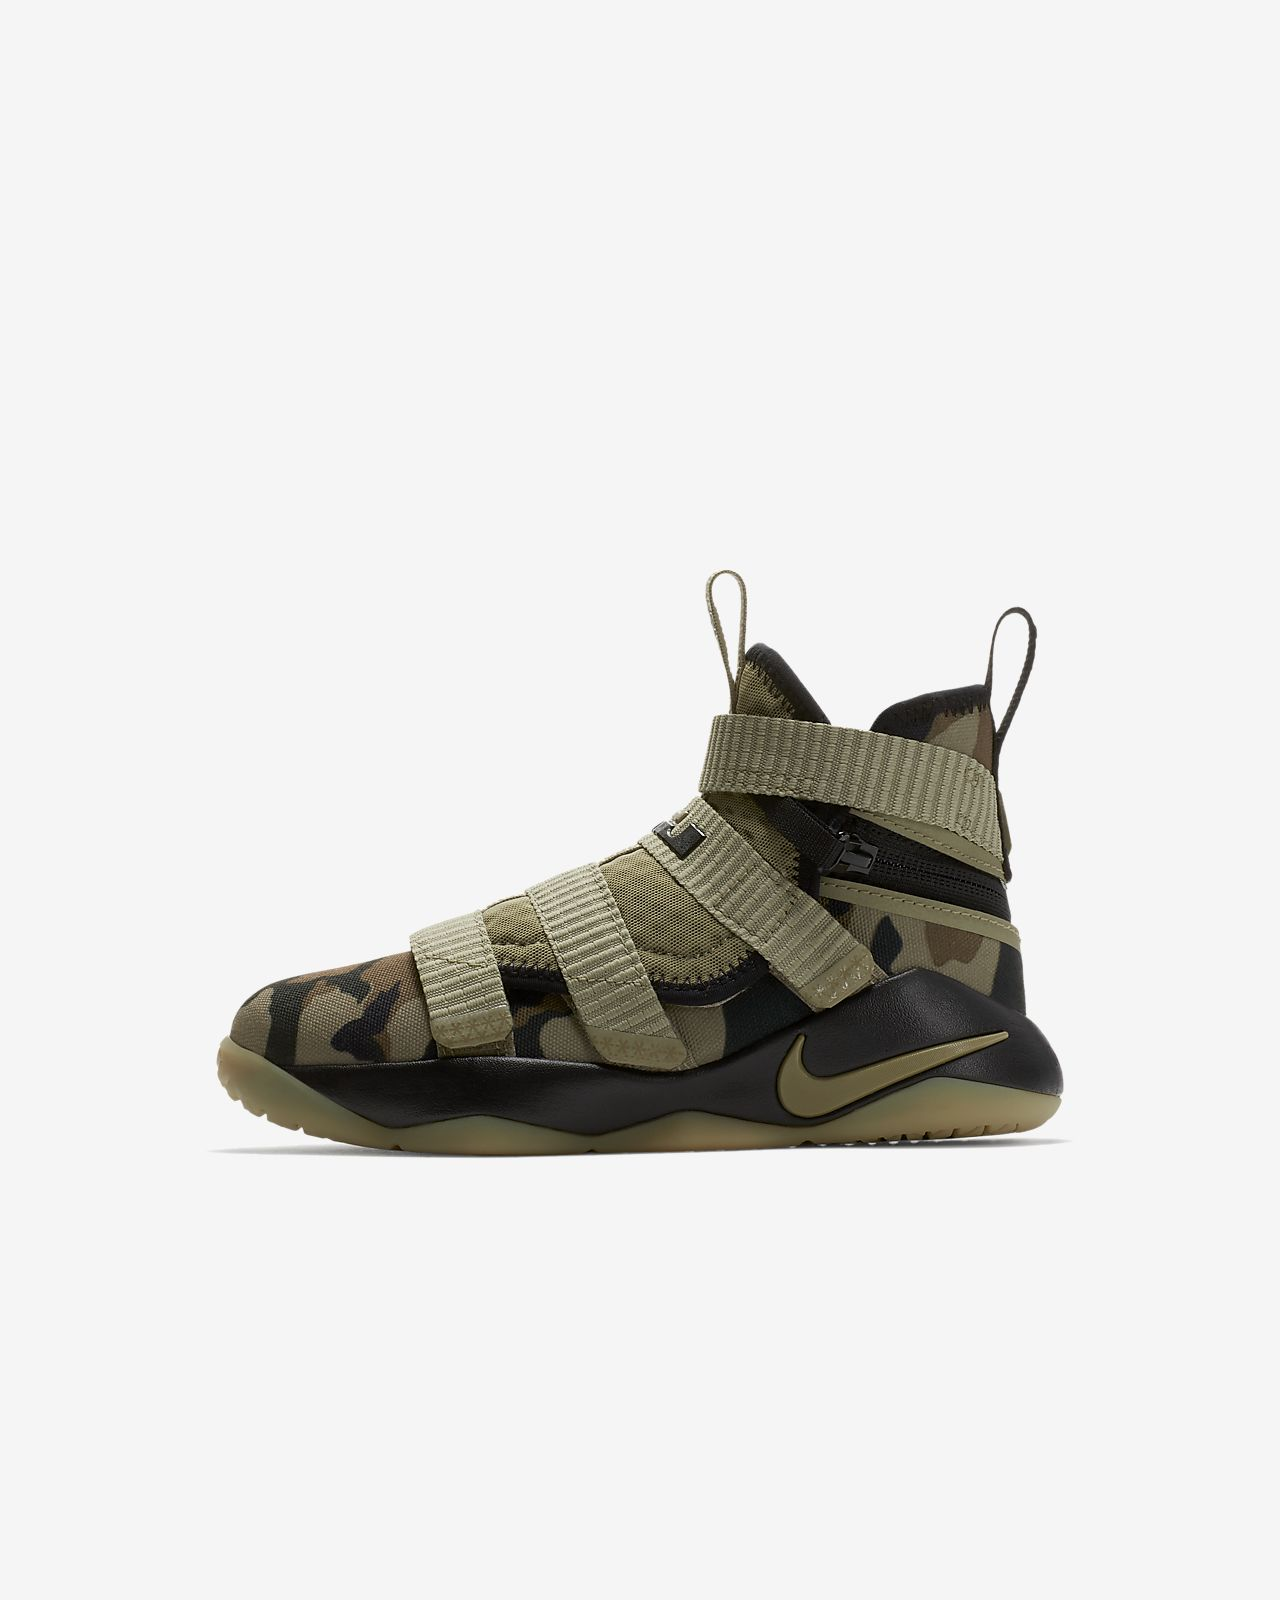 LeBron Soldier 11 FlyEase Little Kids' Shoe